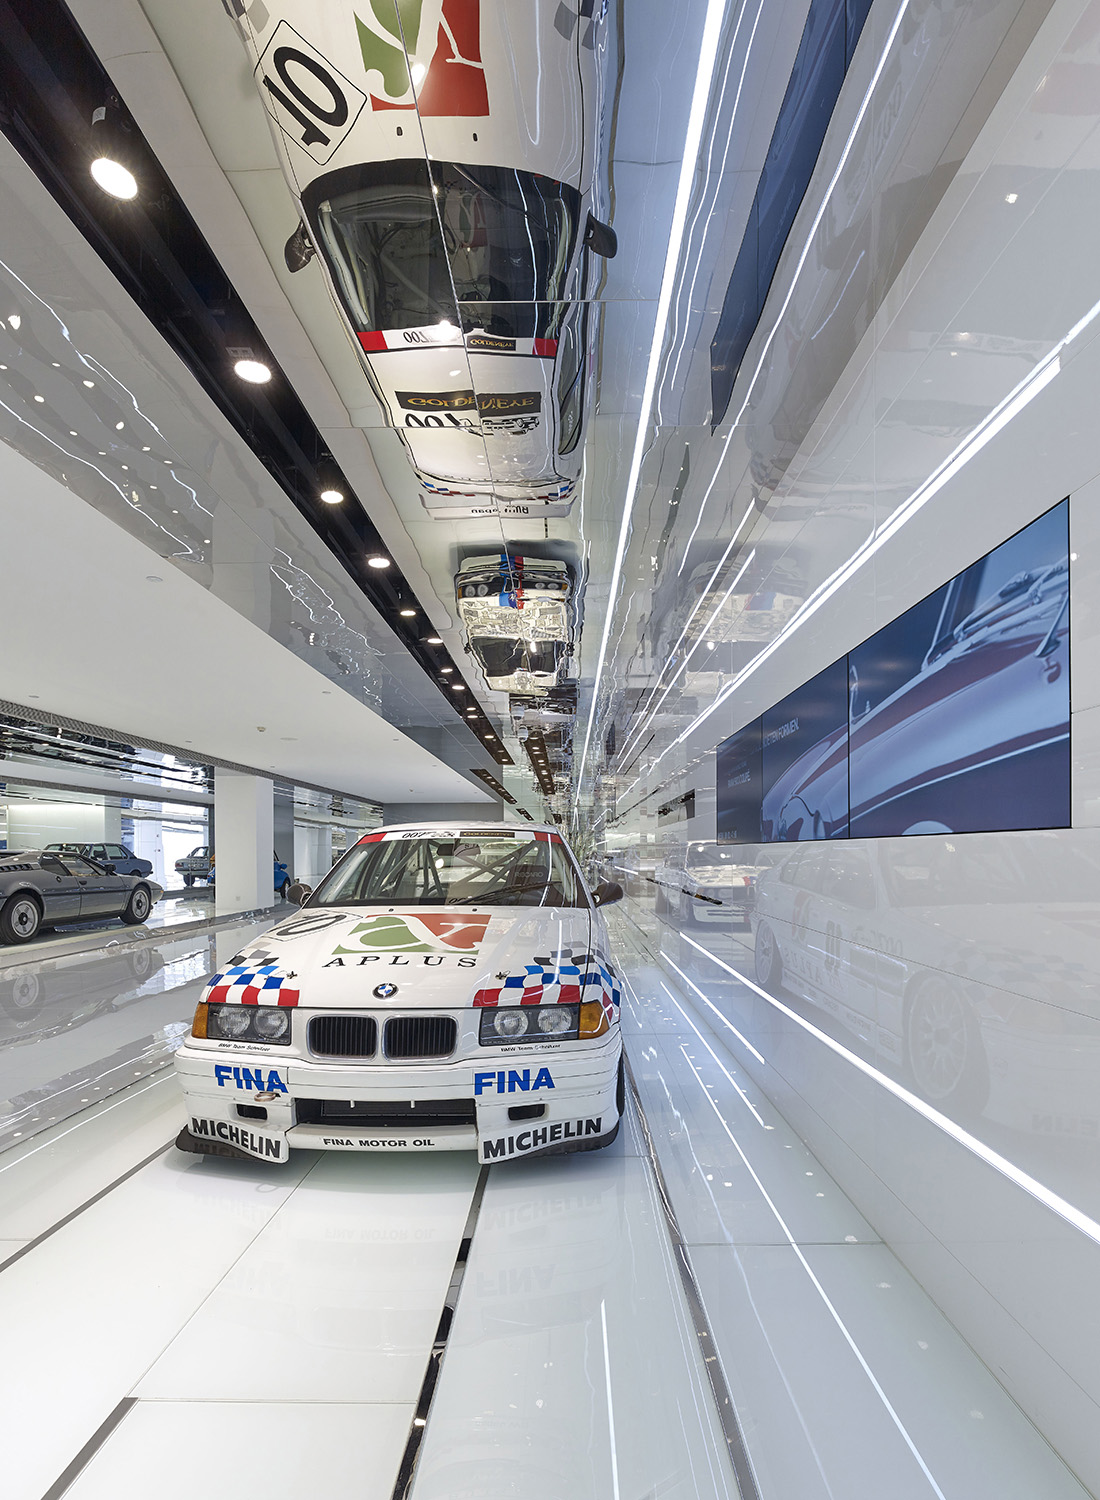 The ceiling mirrors and expands the volumetric space of each display   YANG Chao Ying